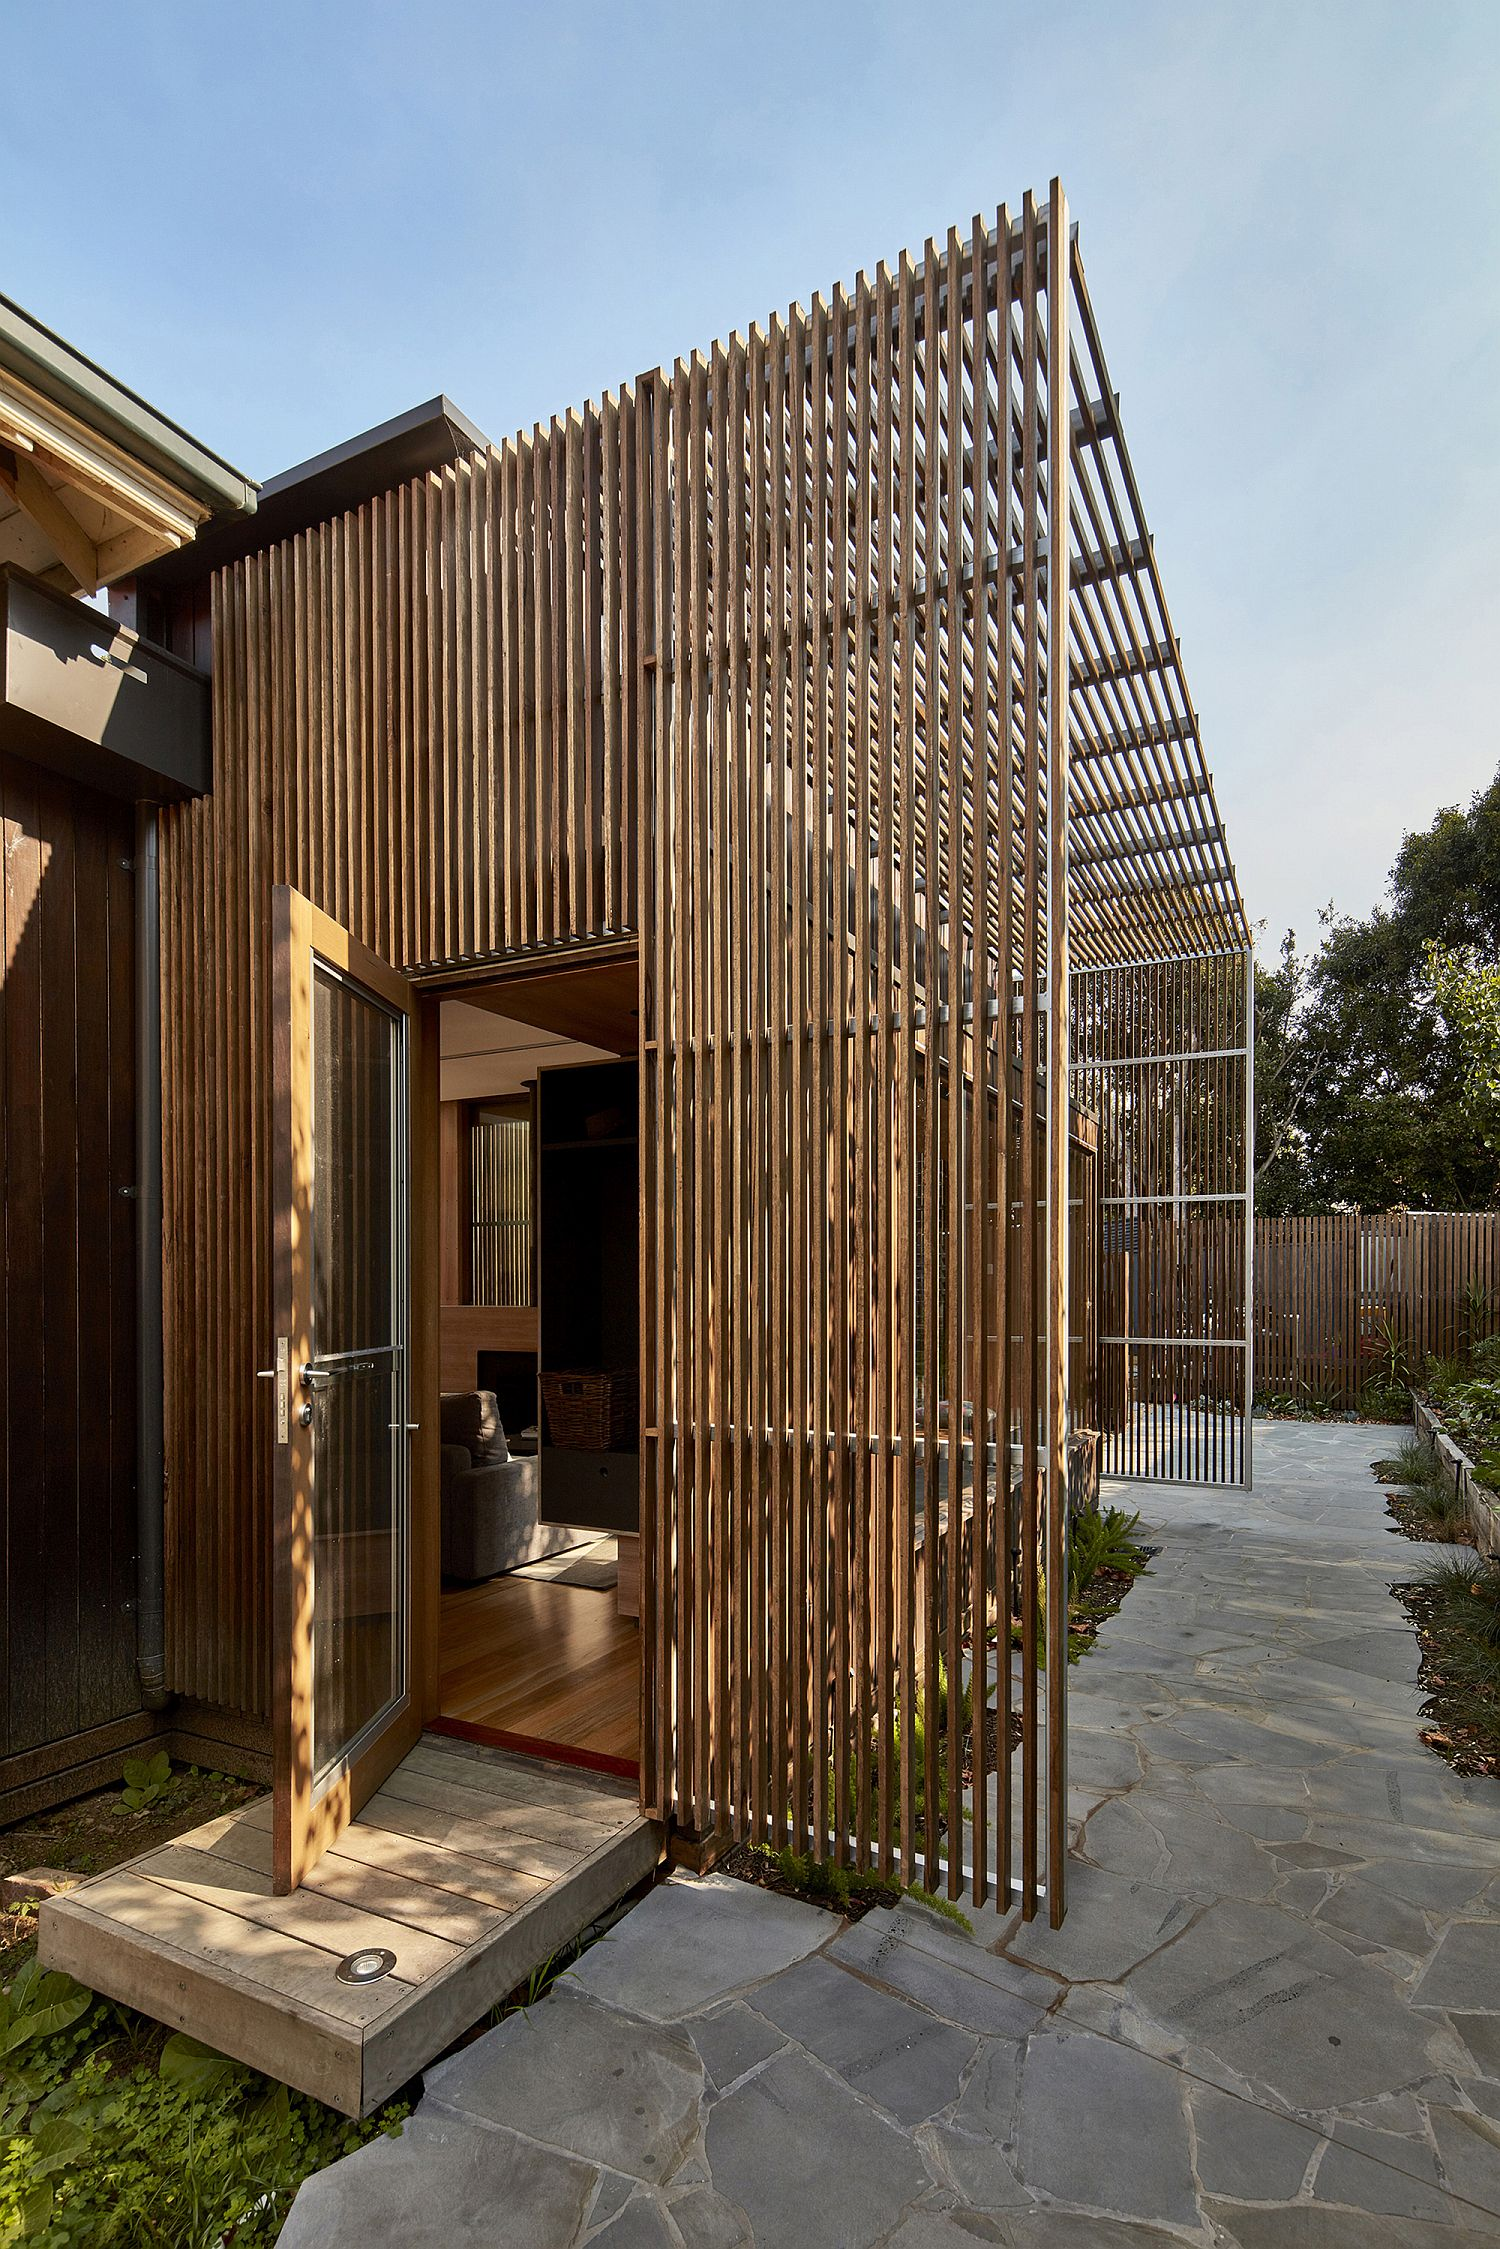 Custom timber screen creates a protected outdoor hangout while keeping out harsh sunlight